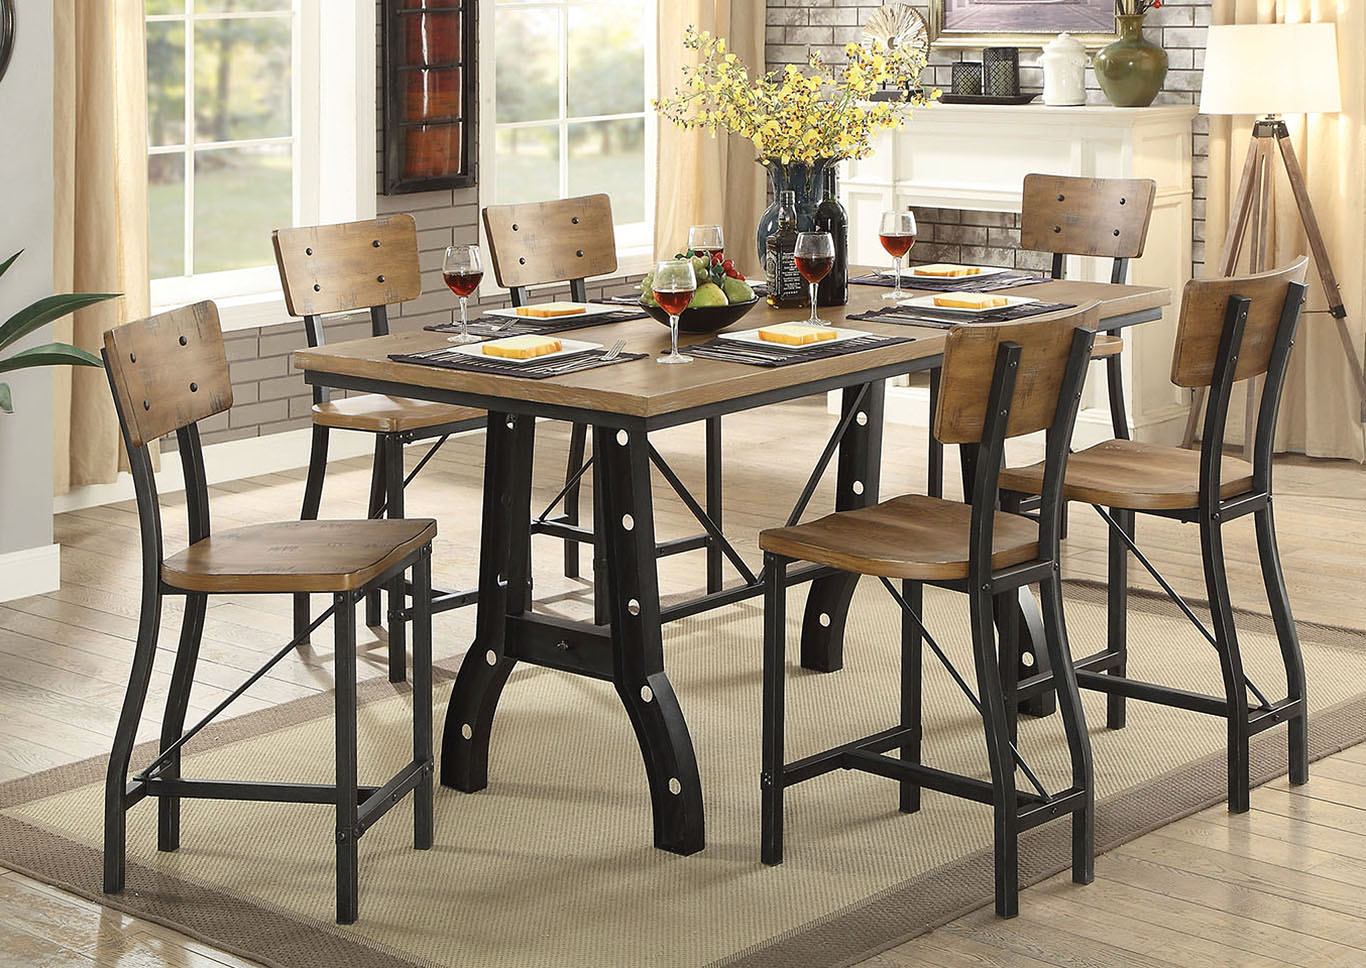 Kirstin Rustic Oak Counter Height Table,Furniture of America